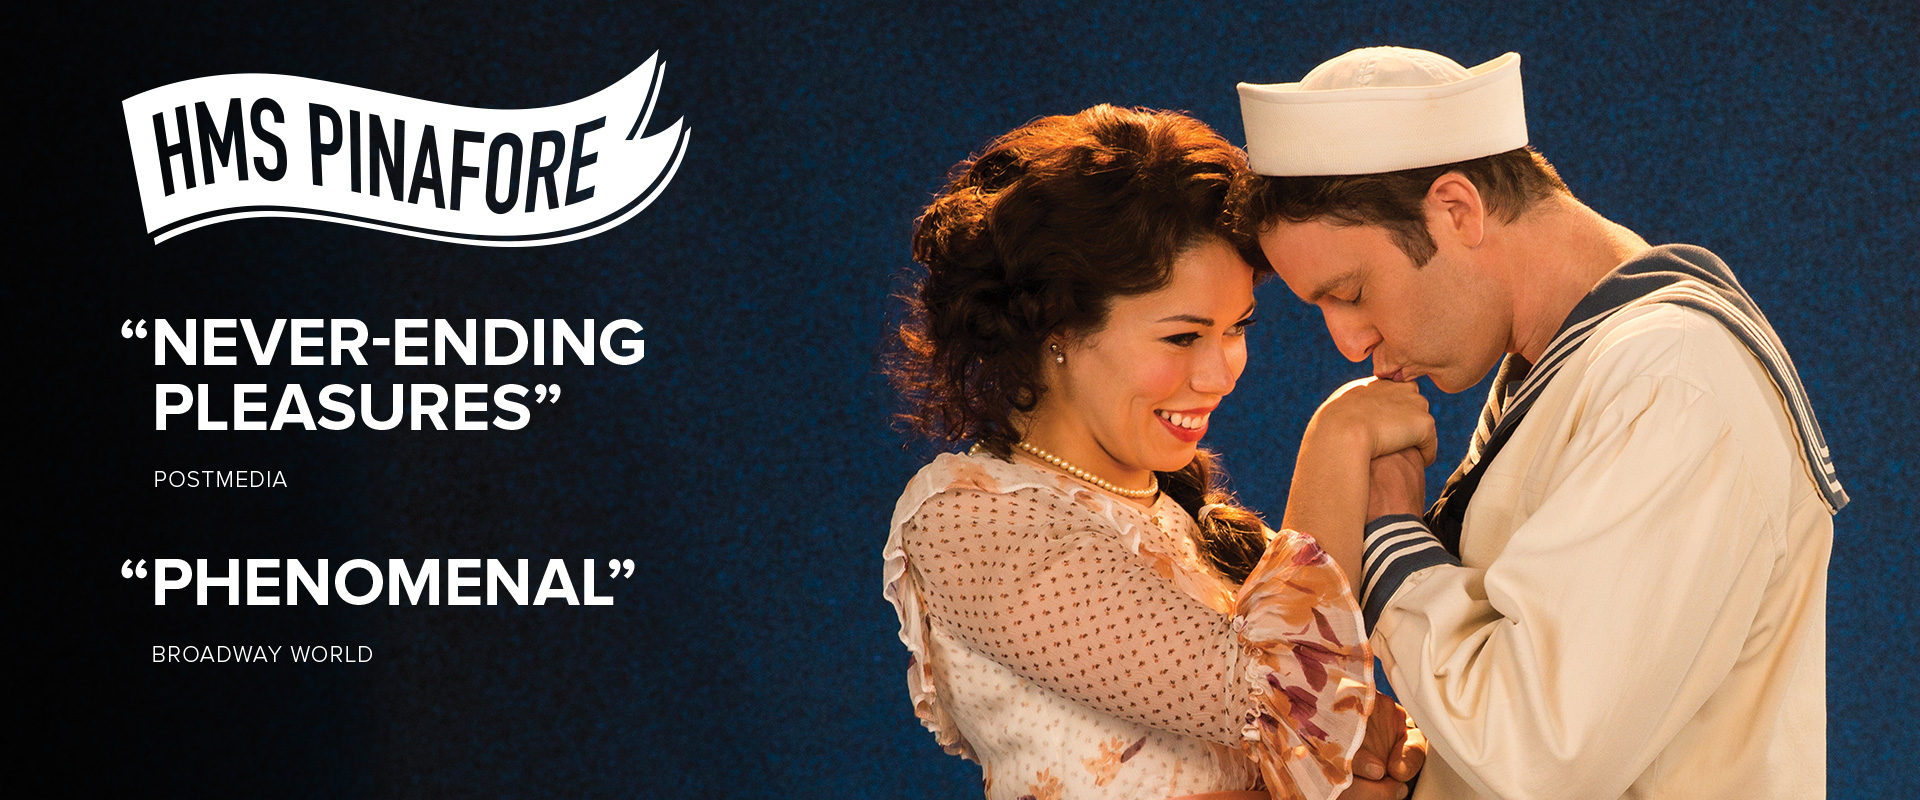 Publicity image from HMS Pinafore featuring Jennifer Rider-Shaw and Mark Uhre